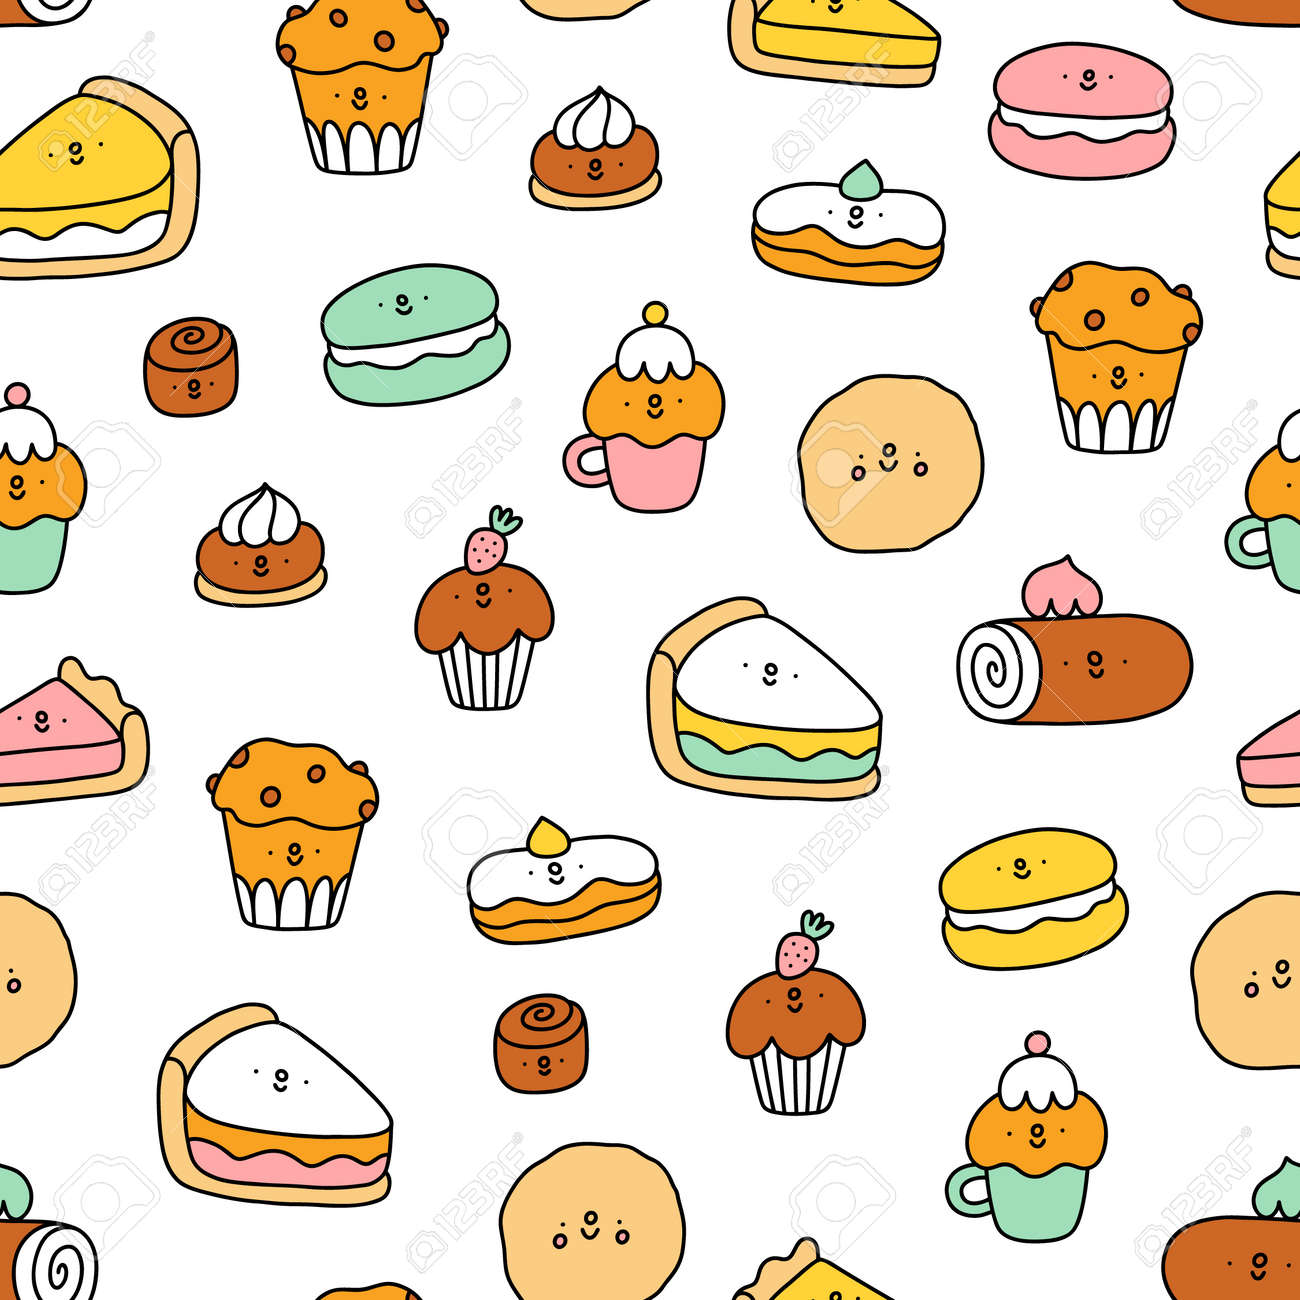 Cute pastry characters, cartoon macarons, cupcakes and cookies, vector seamless pattern - 163336771